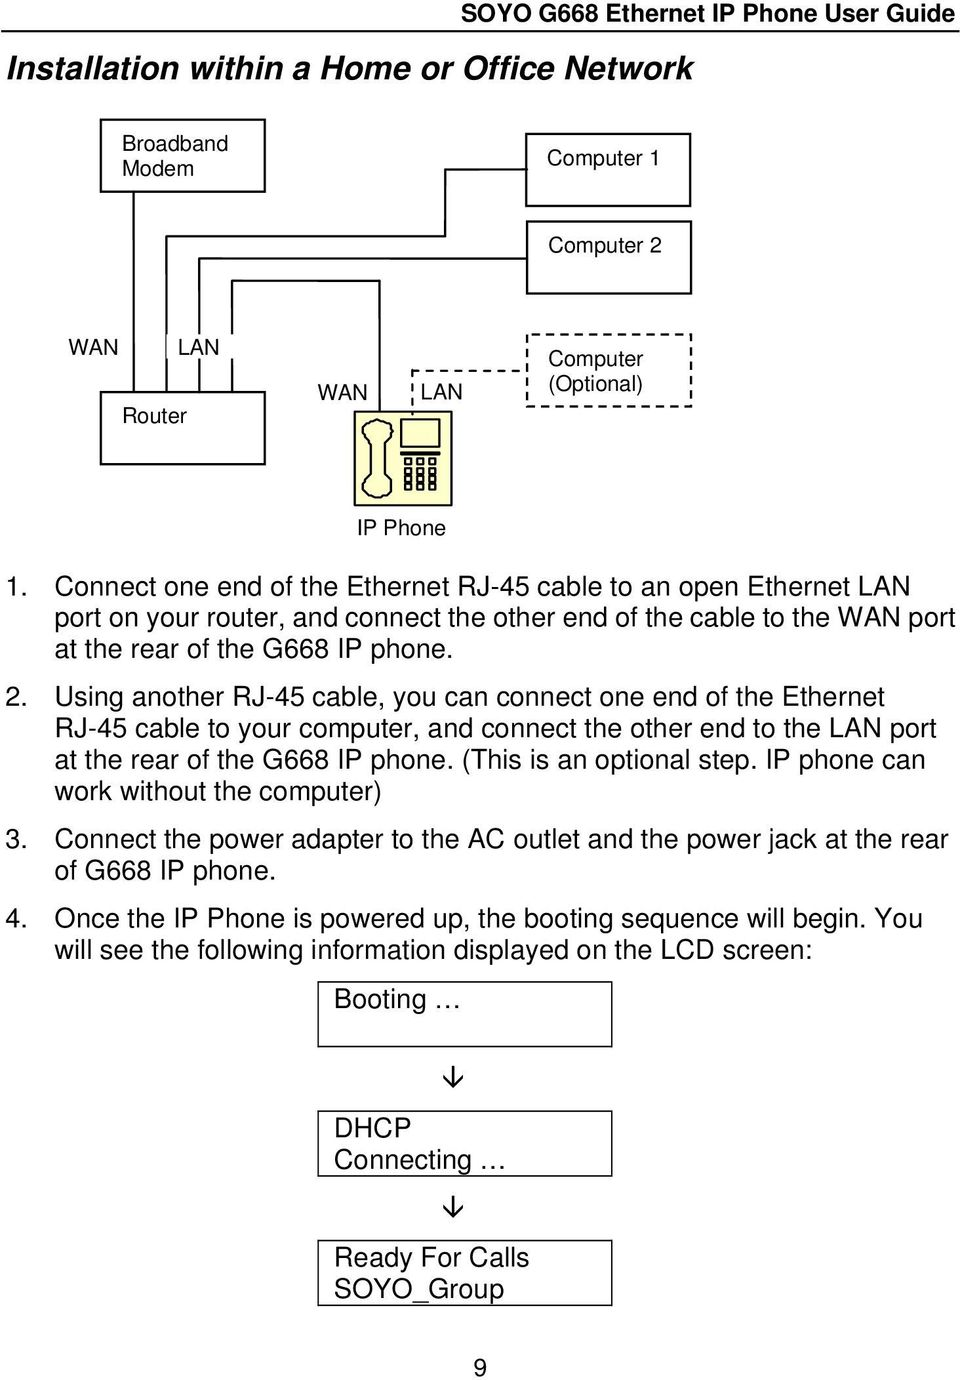 Using another RJ-45 cable, you can connect one end of the Ethernet RJ-45 cable to your computer, and connect the other end to the LAN port at the rear of the G668 IP phone. (This is an optional step.